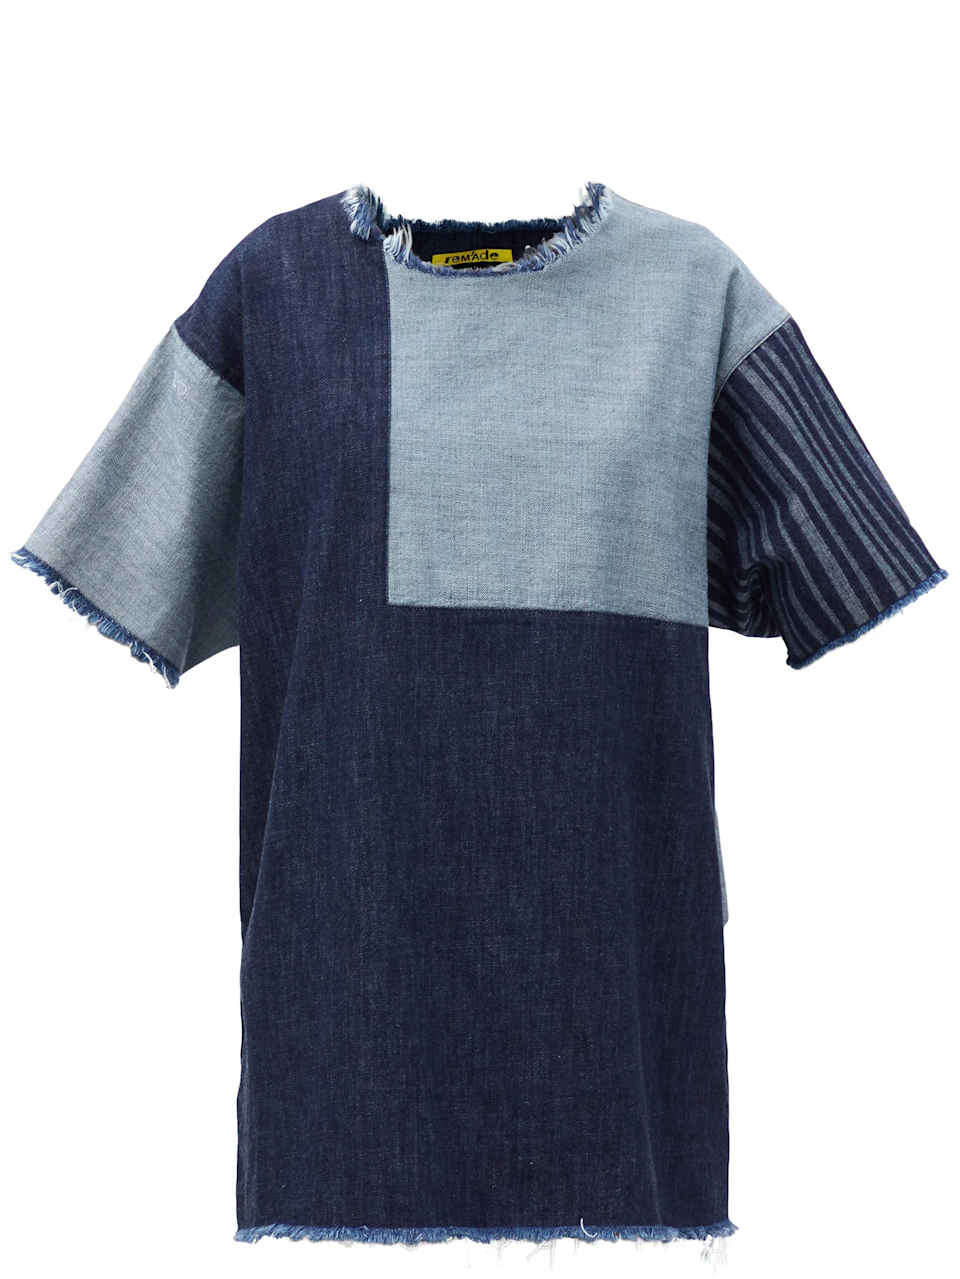 "<br><br><strong>Marques'Almeida</strong> Patchwork Upcycled Denim Mini Dress, $, available at <a href=""https://go.skimresources.com/?id=30283X879131&url=https%3A%2F%2Fwww.matchesfashion.com%2Fus%2Fproducts%2FMarques%2527Almeida-Patchwork-upcycled-denim-mini-dress-1391154"" rel=""nofollow noopener"" target=""_blank"" data-ylk=""slk:MatchesFashion"" class=""link rapid-noclick-resp"">MatchesFashion</a>"